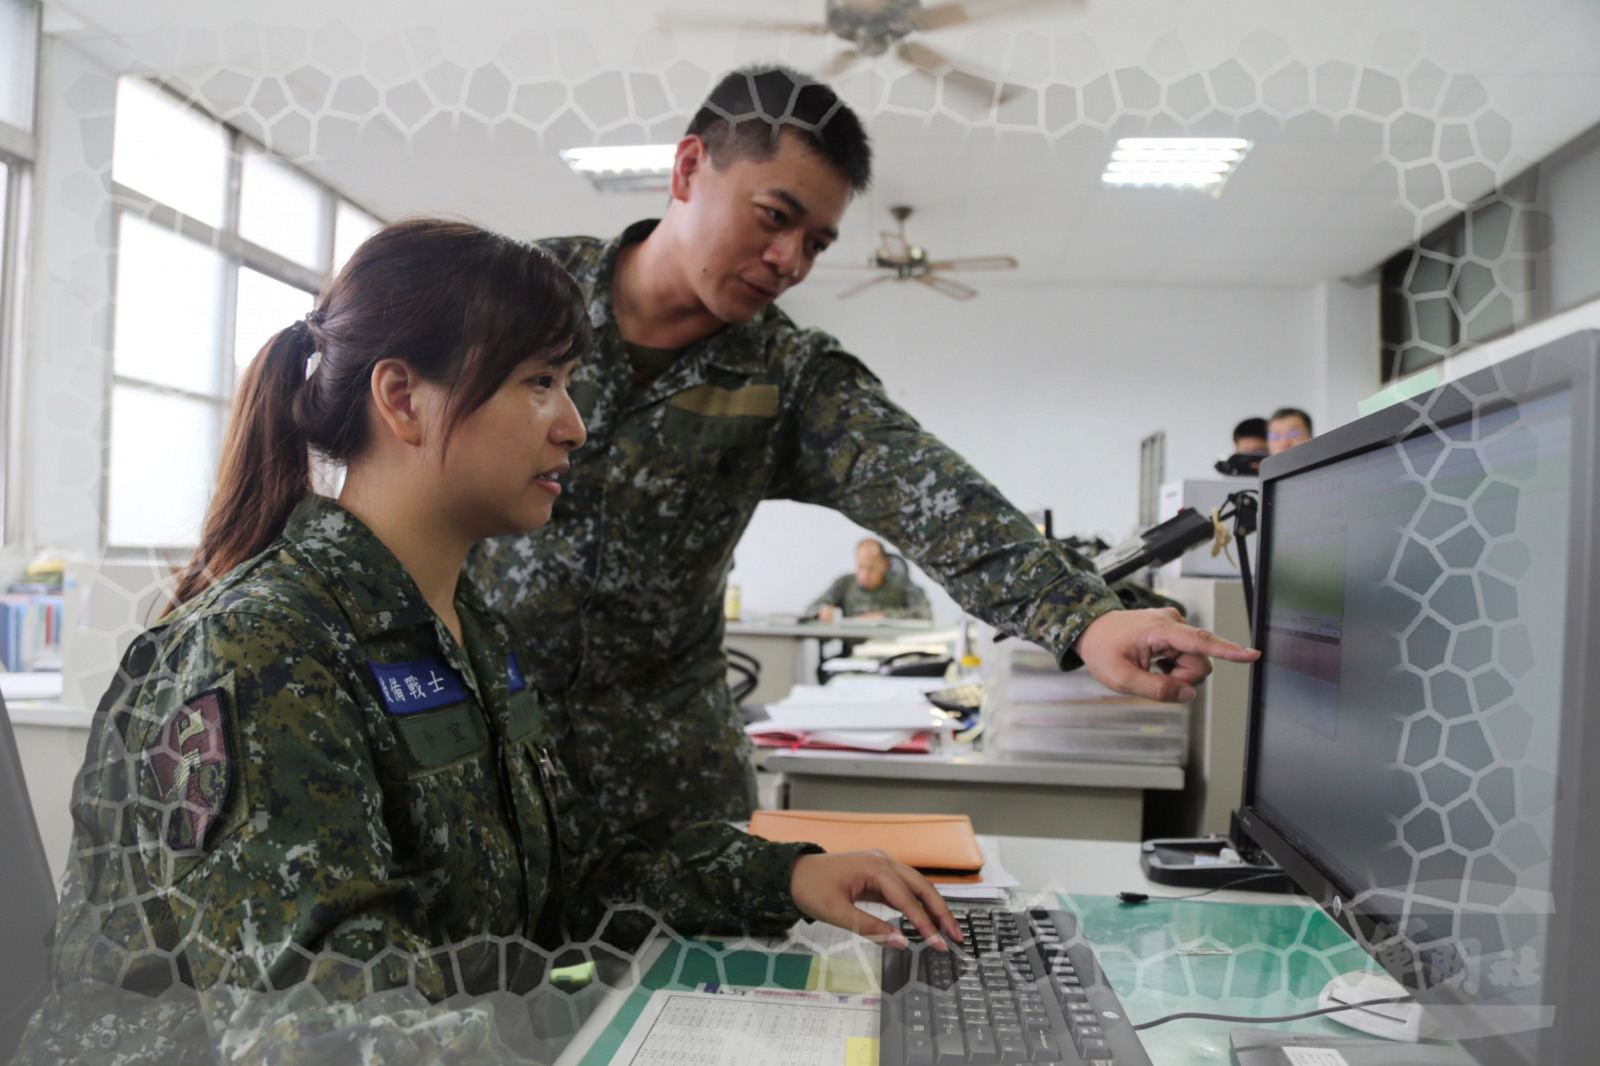 """Ling-Yi Chen (L), taking part in the project """"Reserves on board again"""" on 11th, was working on the affair of administration. (Photo Credit: MNA"""